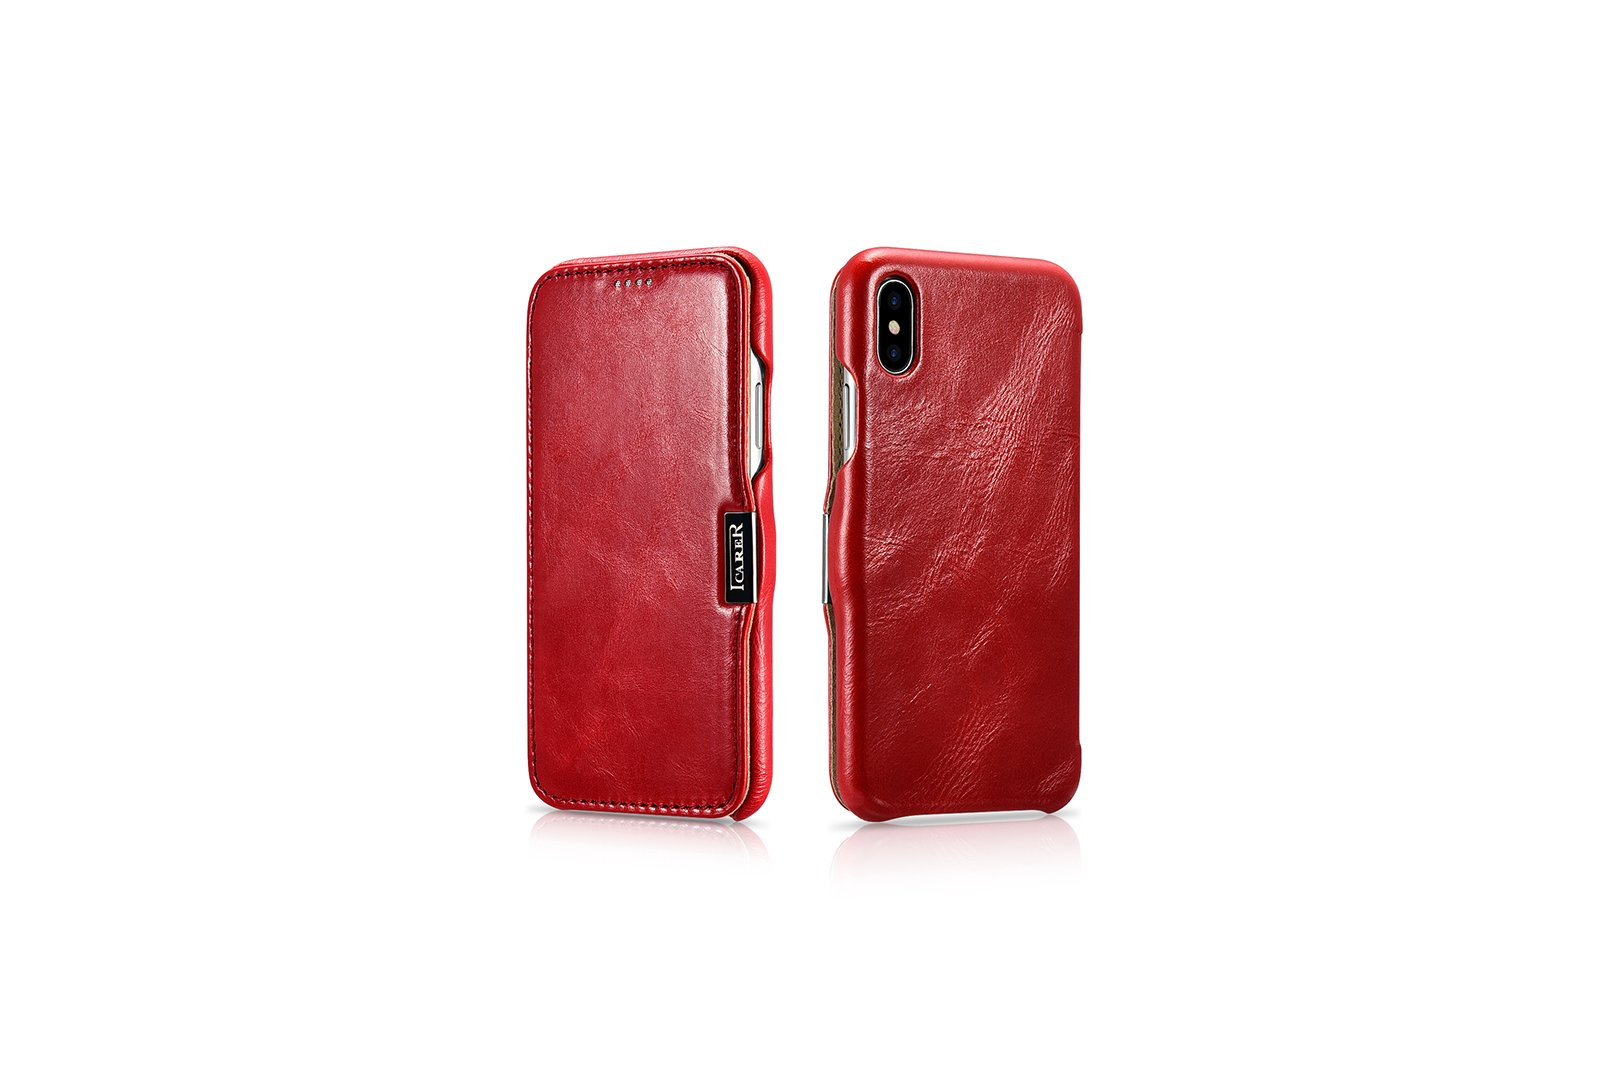 iPhone X Case, ICARER Vintage Series Genuine Leather Folio Flip Case Cover with Magnetic Closure for Apple iPhone X (Red)